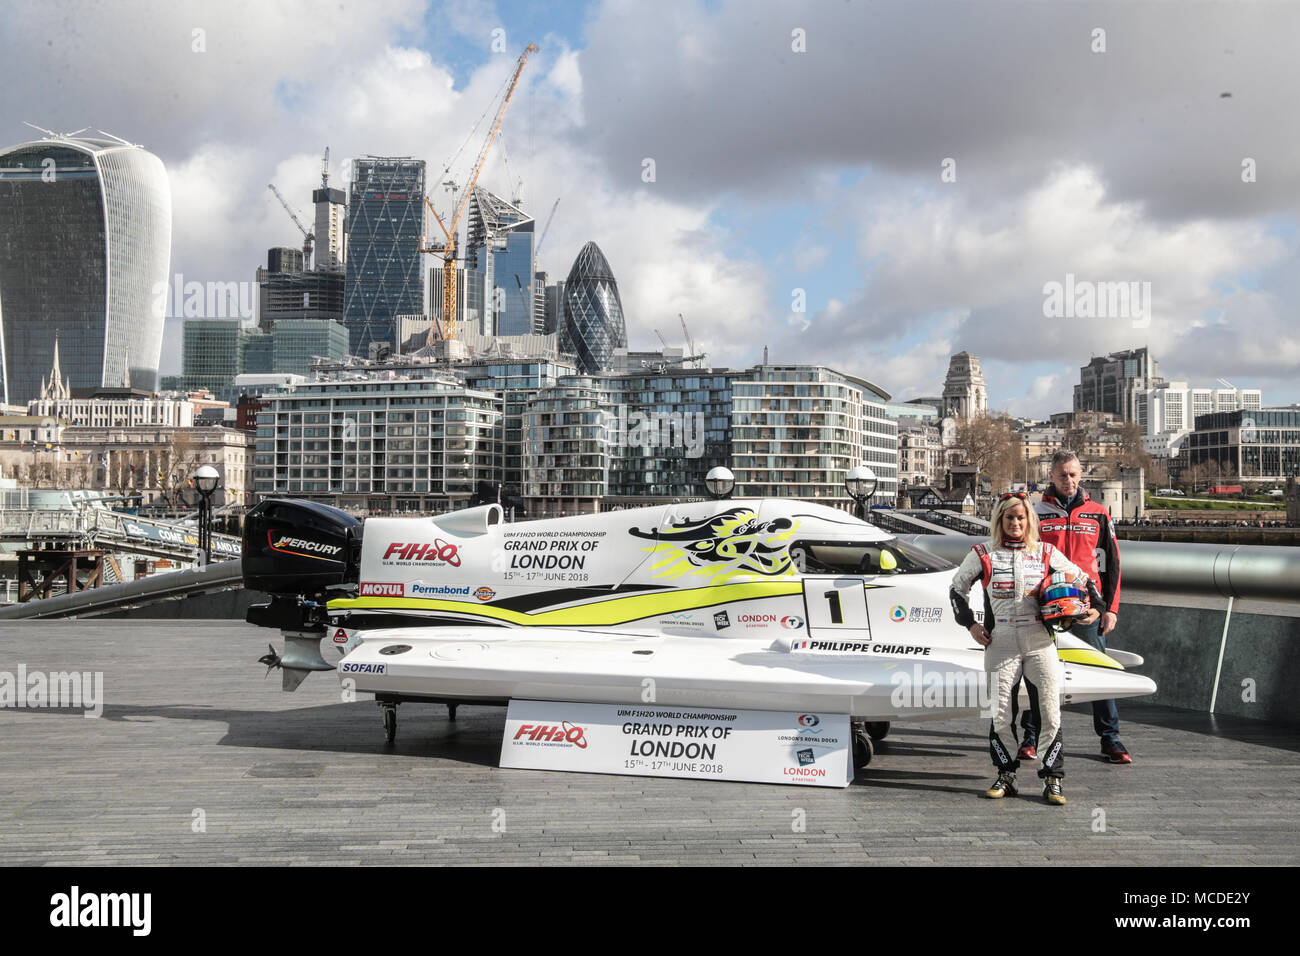 London UK 16 April 2018  Marit Stromoy  Norwegian professional powerboat driver and the first ever woman to win a Formula 1 World Championship Grand Prix in Sharjah, UAE in 2015. Philippe Chiappe – French professional powerboat driver for CTIC F1 Shenzhen China Team, and one of only three drivers to claim a hat-trick of Formula 1 World Championship titles (2014, 2015 & 2016). Credit: Paul Quezada-Neiman/Alamy Live News Stock Photo